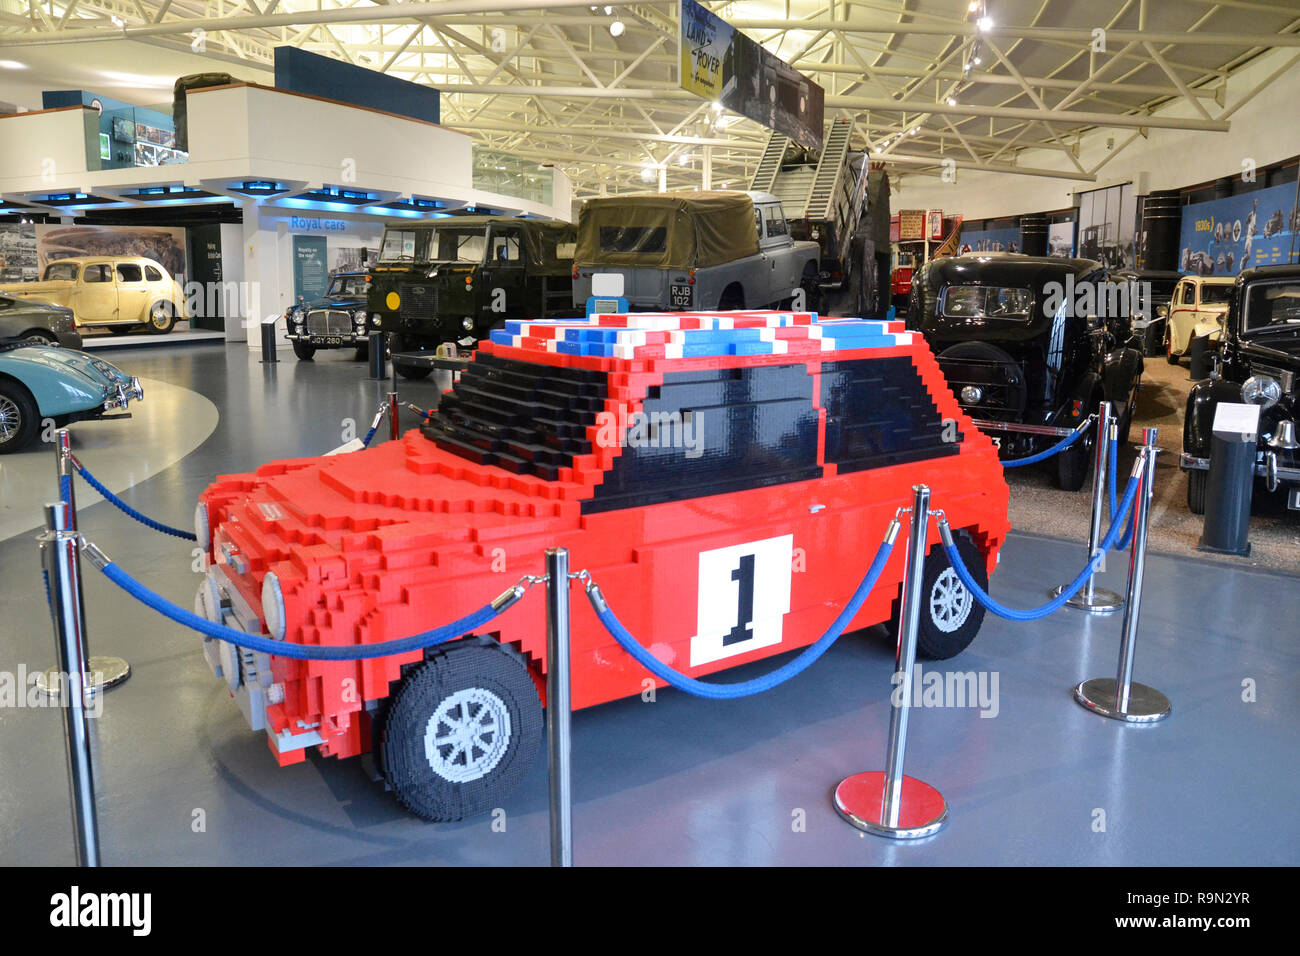 2017 Mini Cooper Lego Style Car Made By Visitors To The Museum